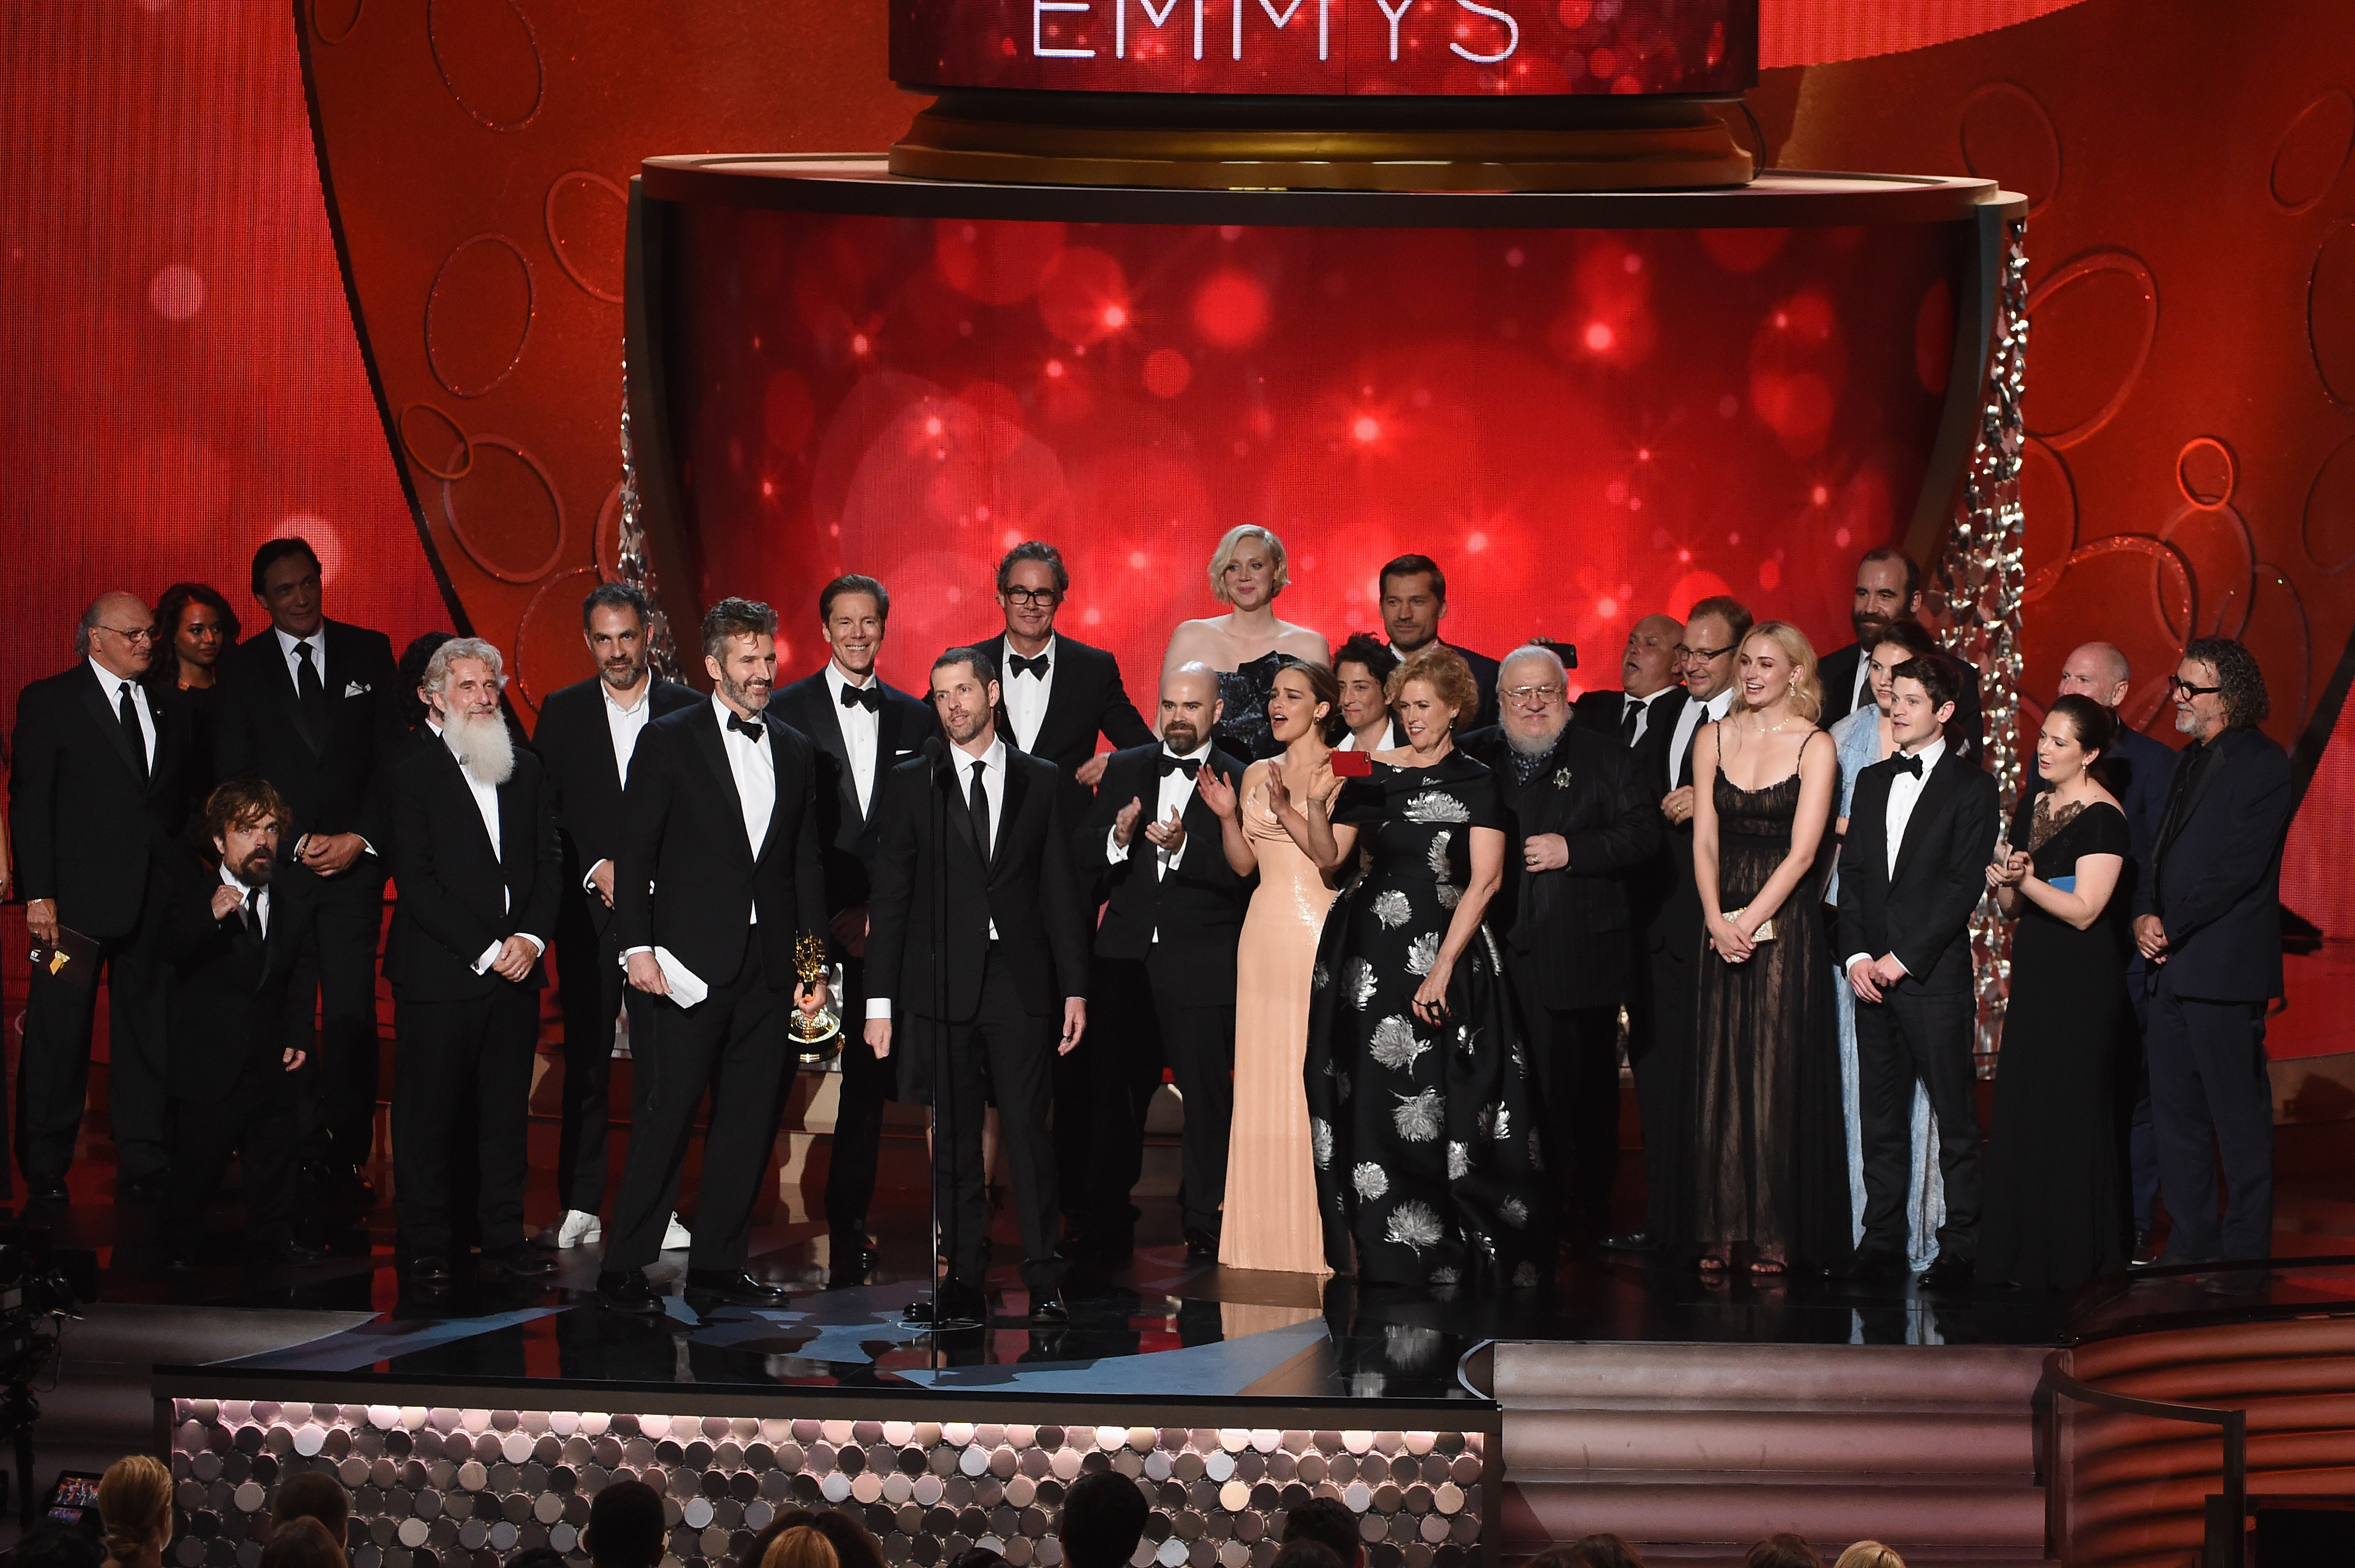 LOS ANGELES, CA - SEPTEMBER 18: Writer/producers David Benioff and D.B. Weiss (both center-left, at microphone) with production crew accept Outstanding Drama Series for 'Game of Thrones' onstage during the 68th Annual Primetime Emmy Awards at Microsoft Theater on September 18, 2016 in Los Angeles, California. (Photo by Kevin Winter/Getty Images)